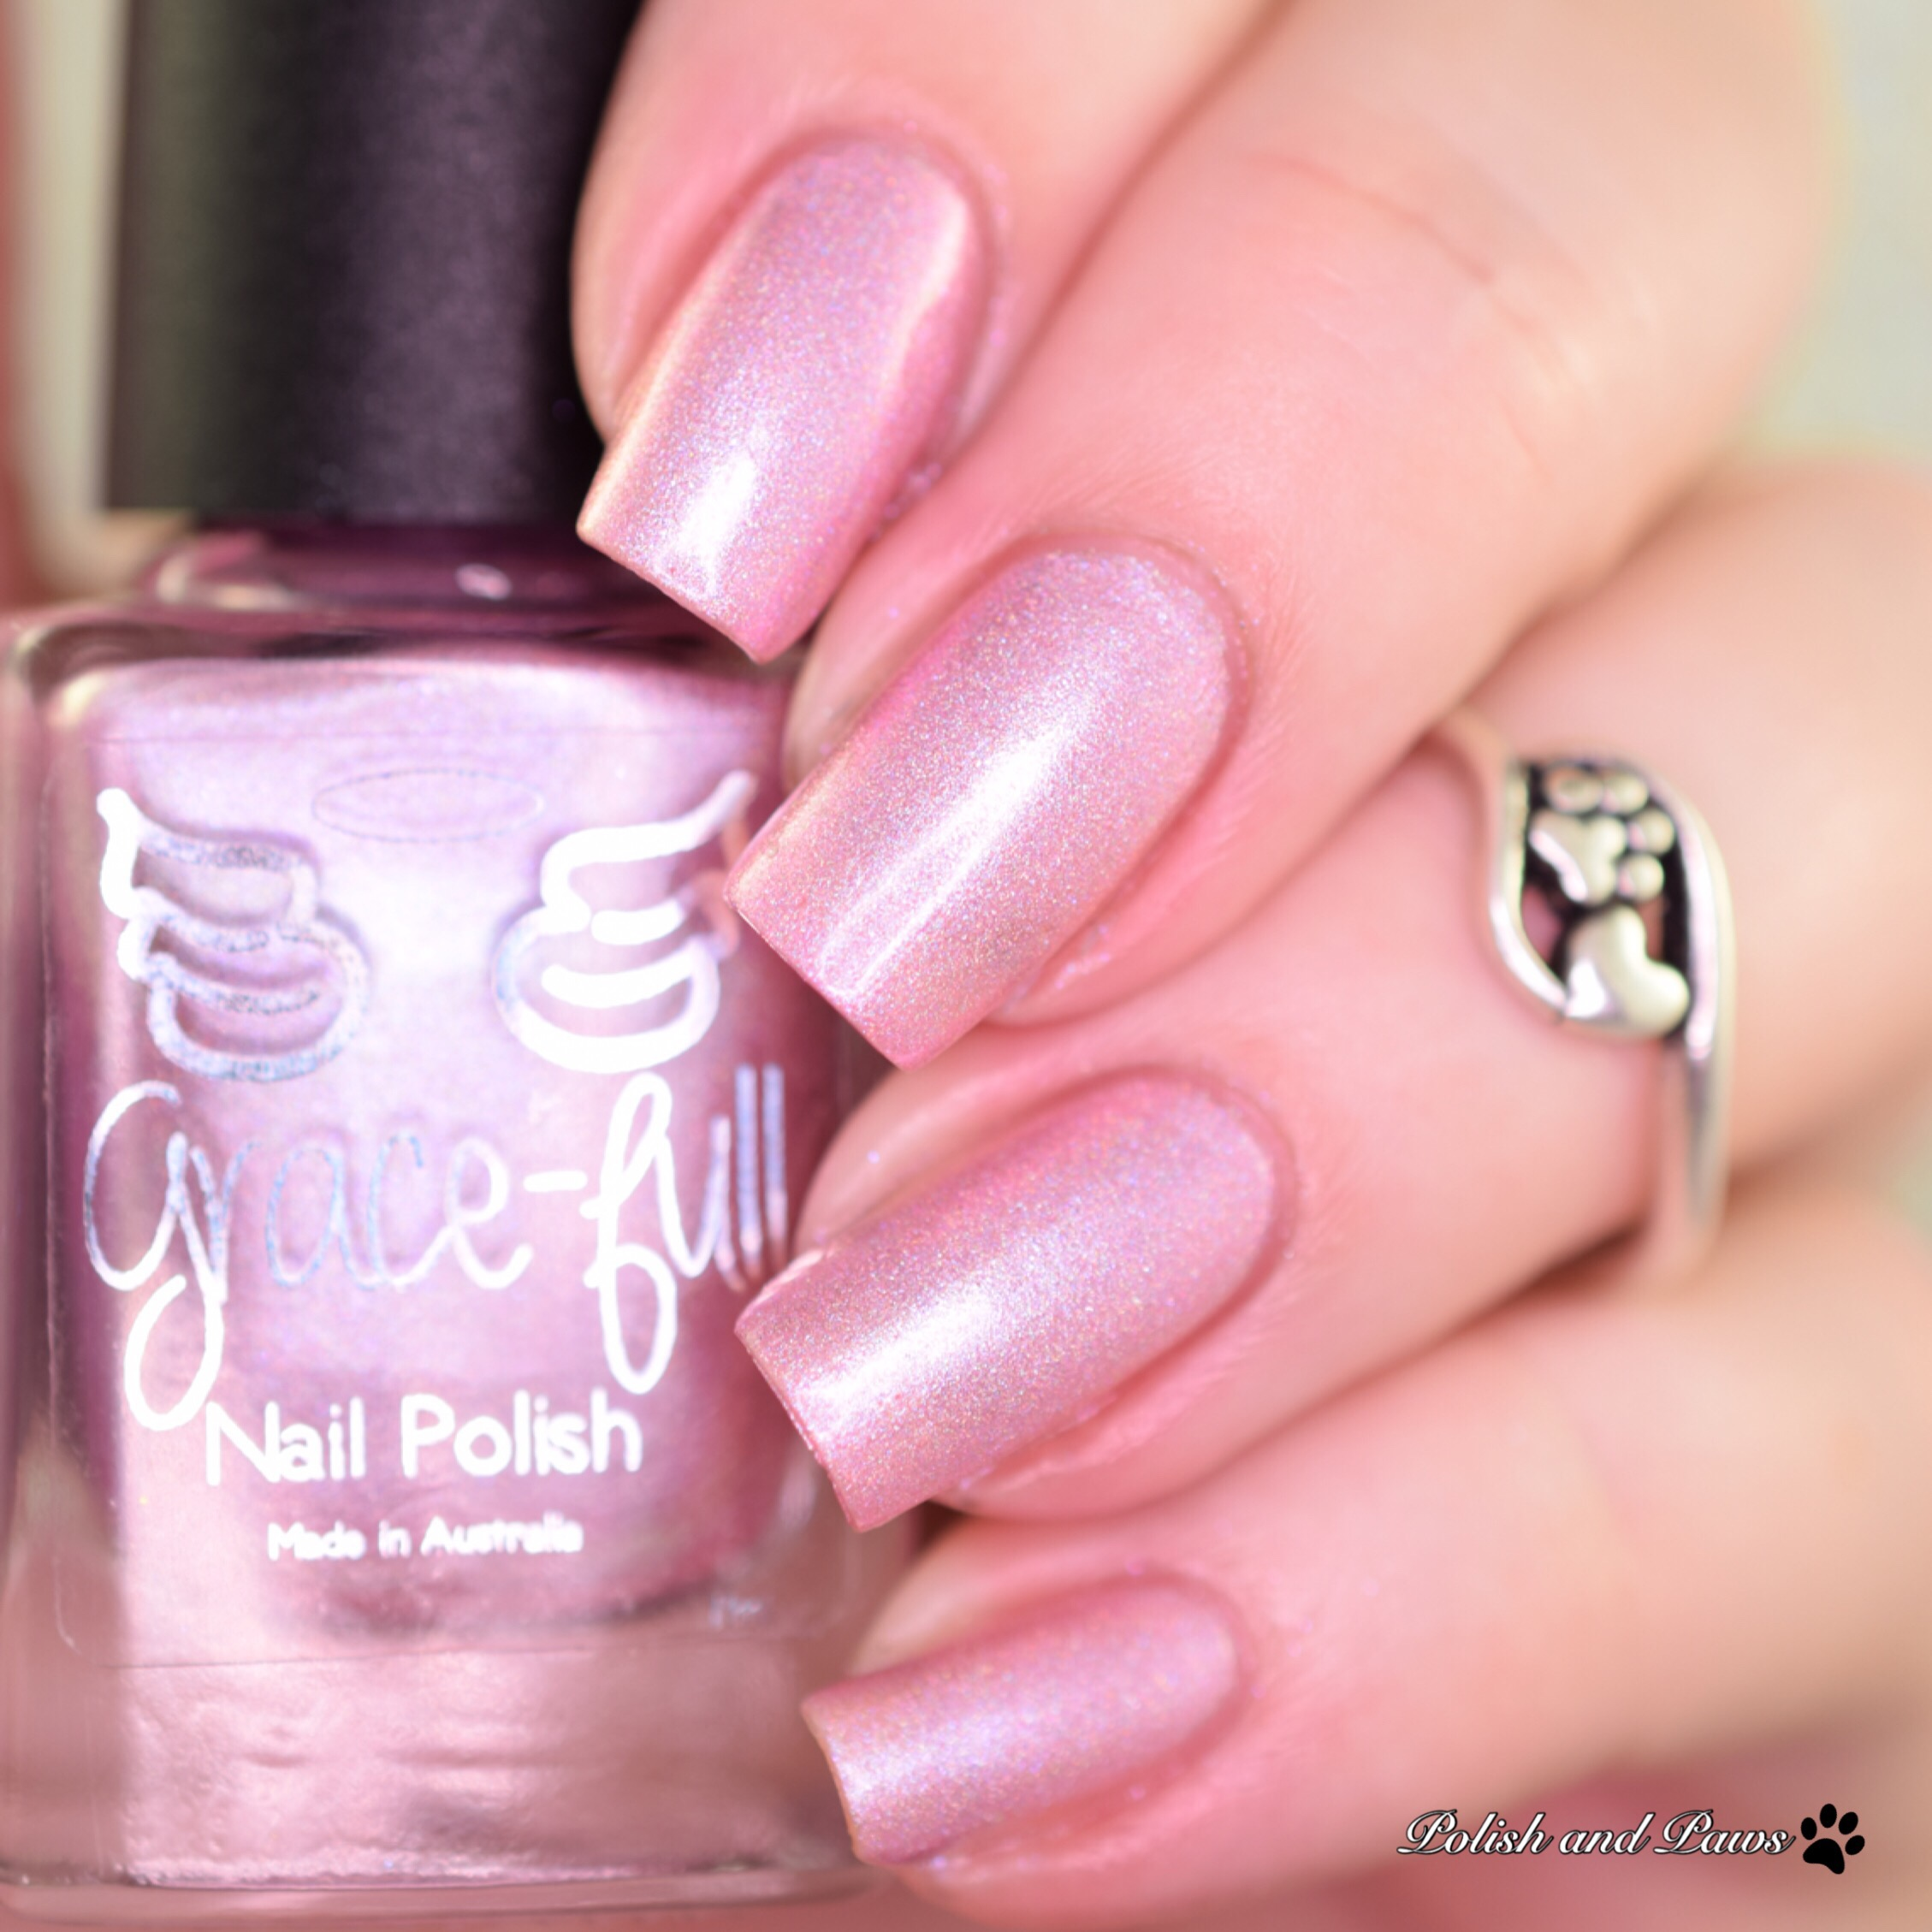 Grace-full Nail Polish Fairy Kisses